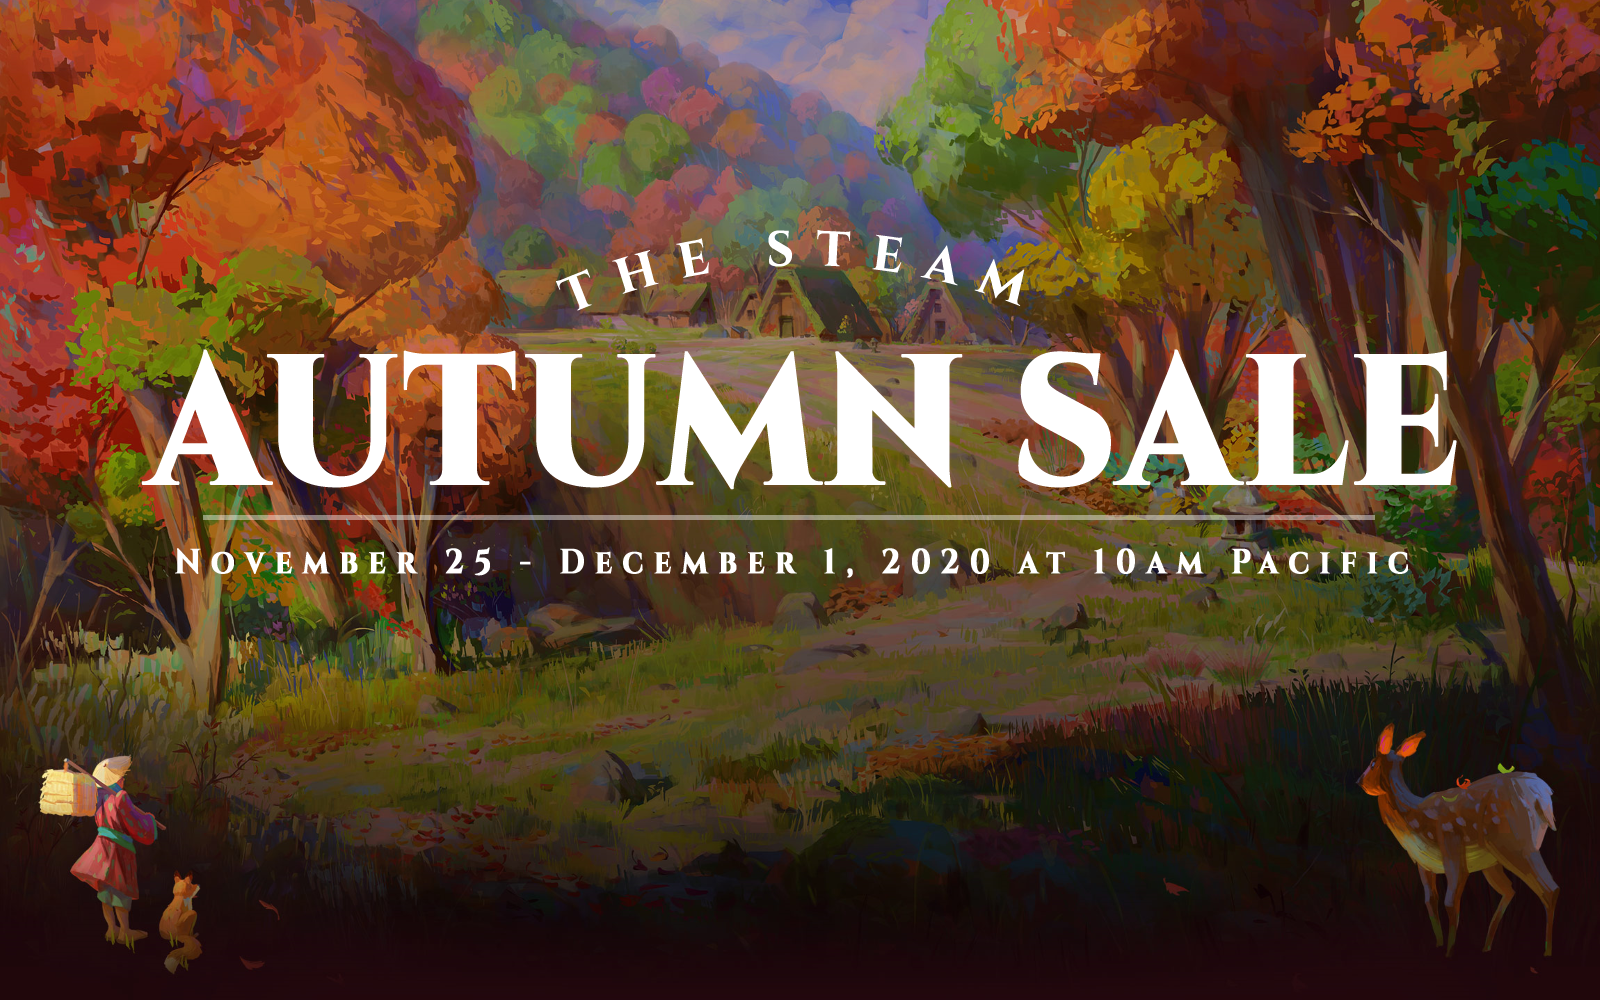 The Steam Autumn Sale Is Now On